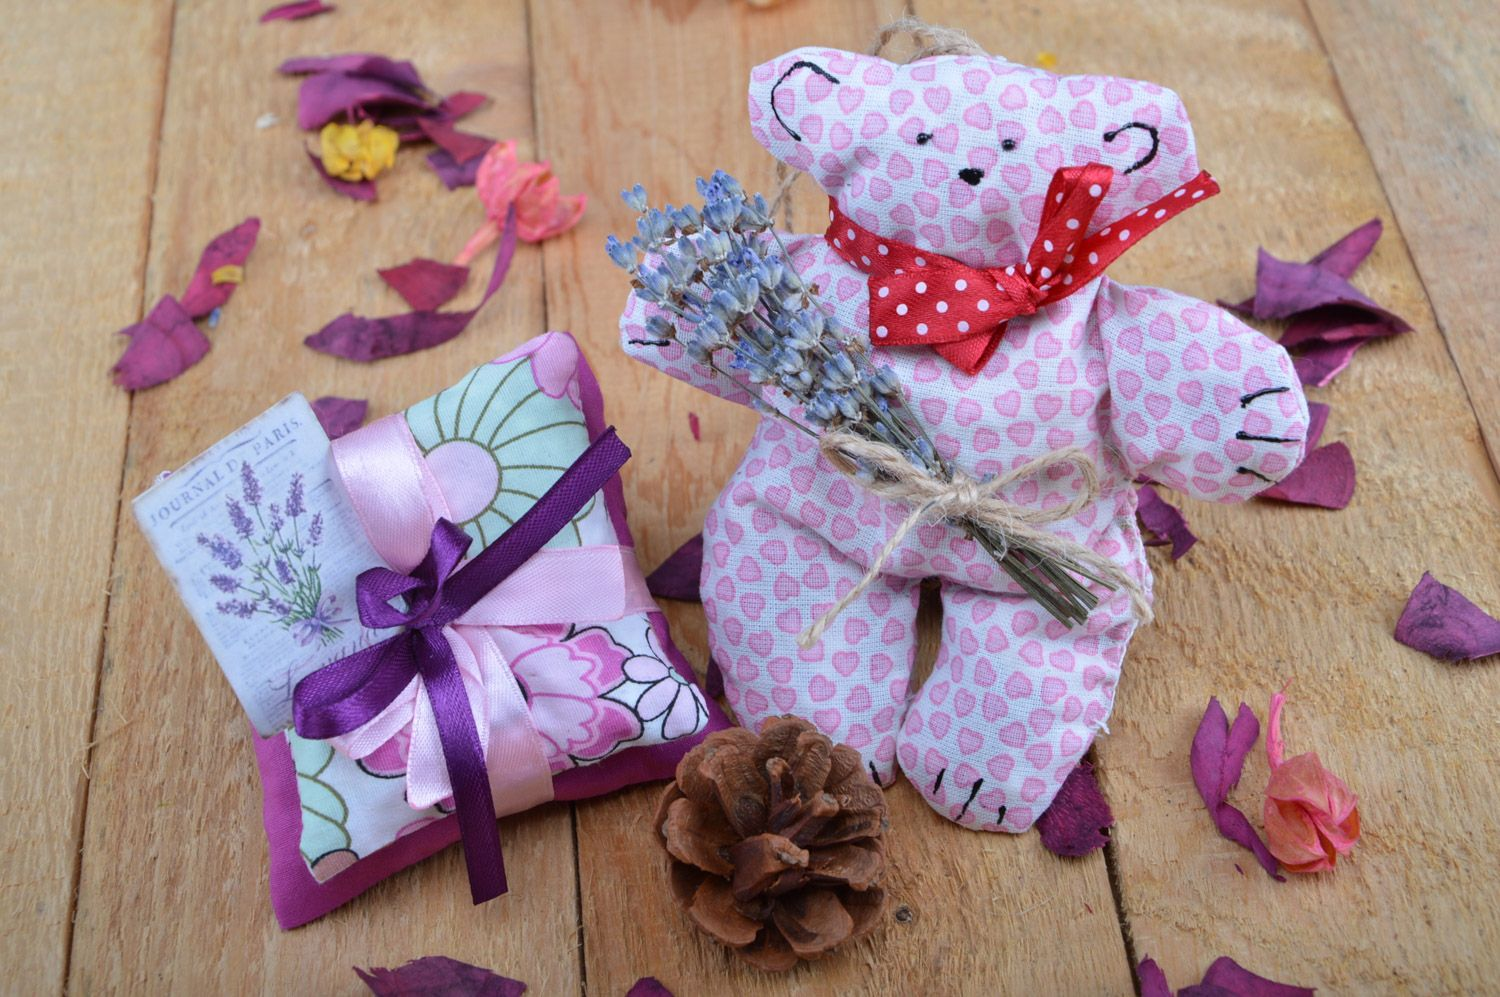 Set of handmade sachet pillows with herbs and soft fabric toy bear 3 items photo 5